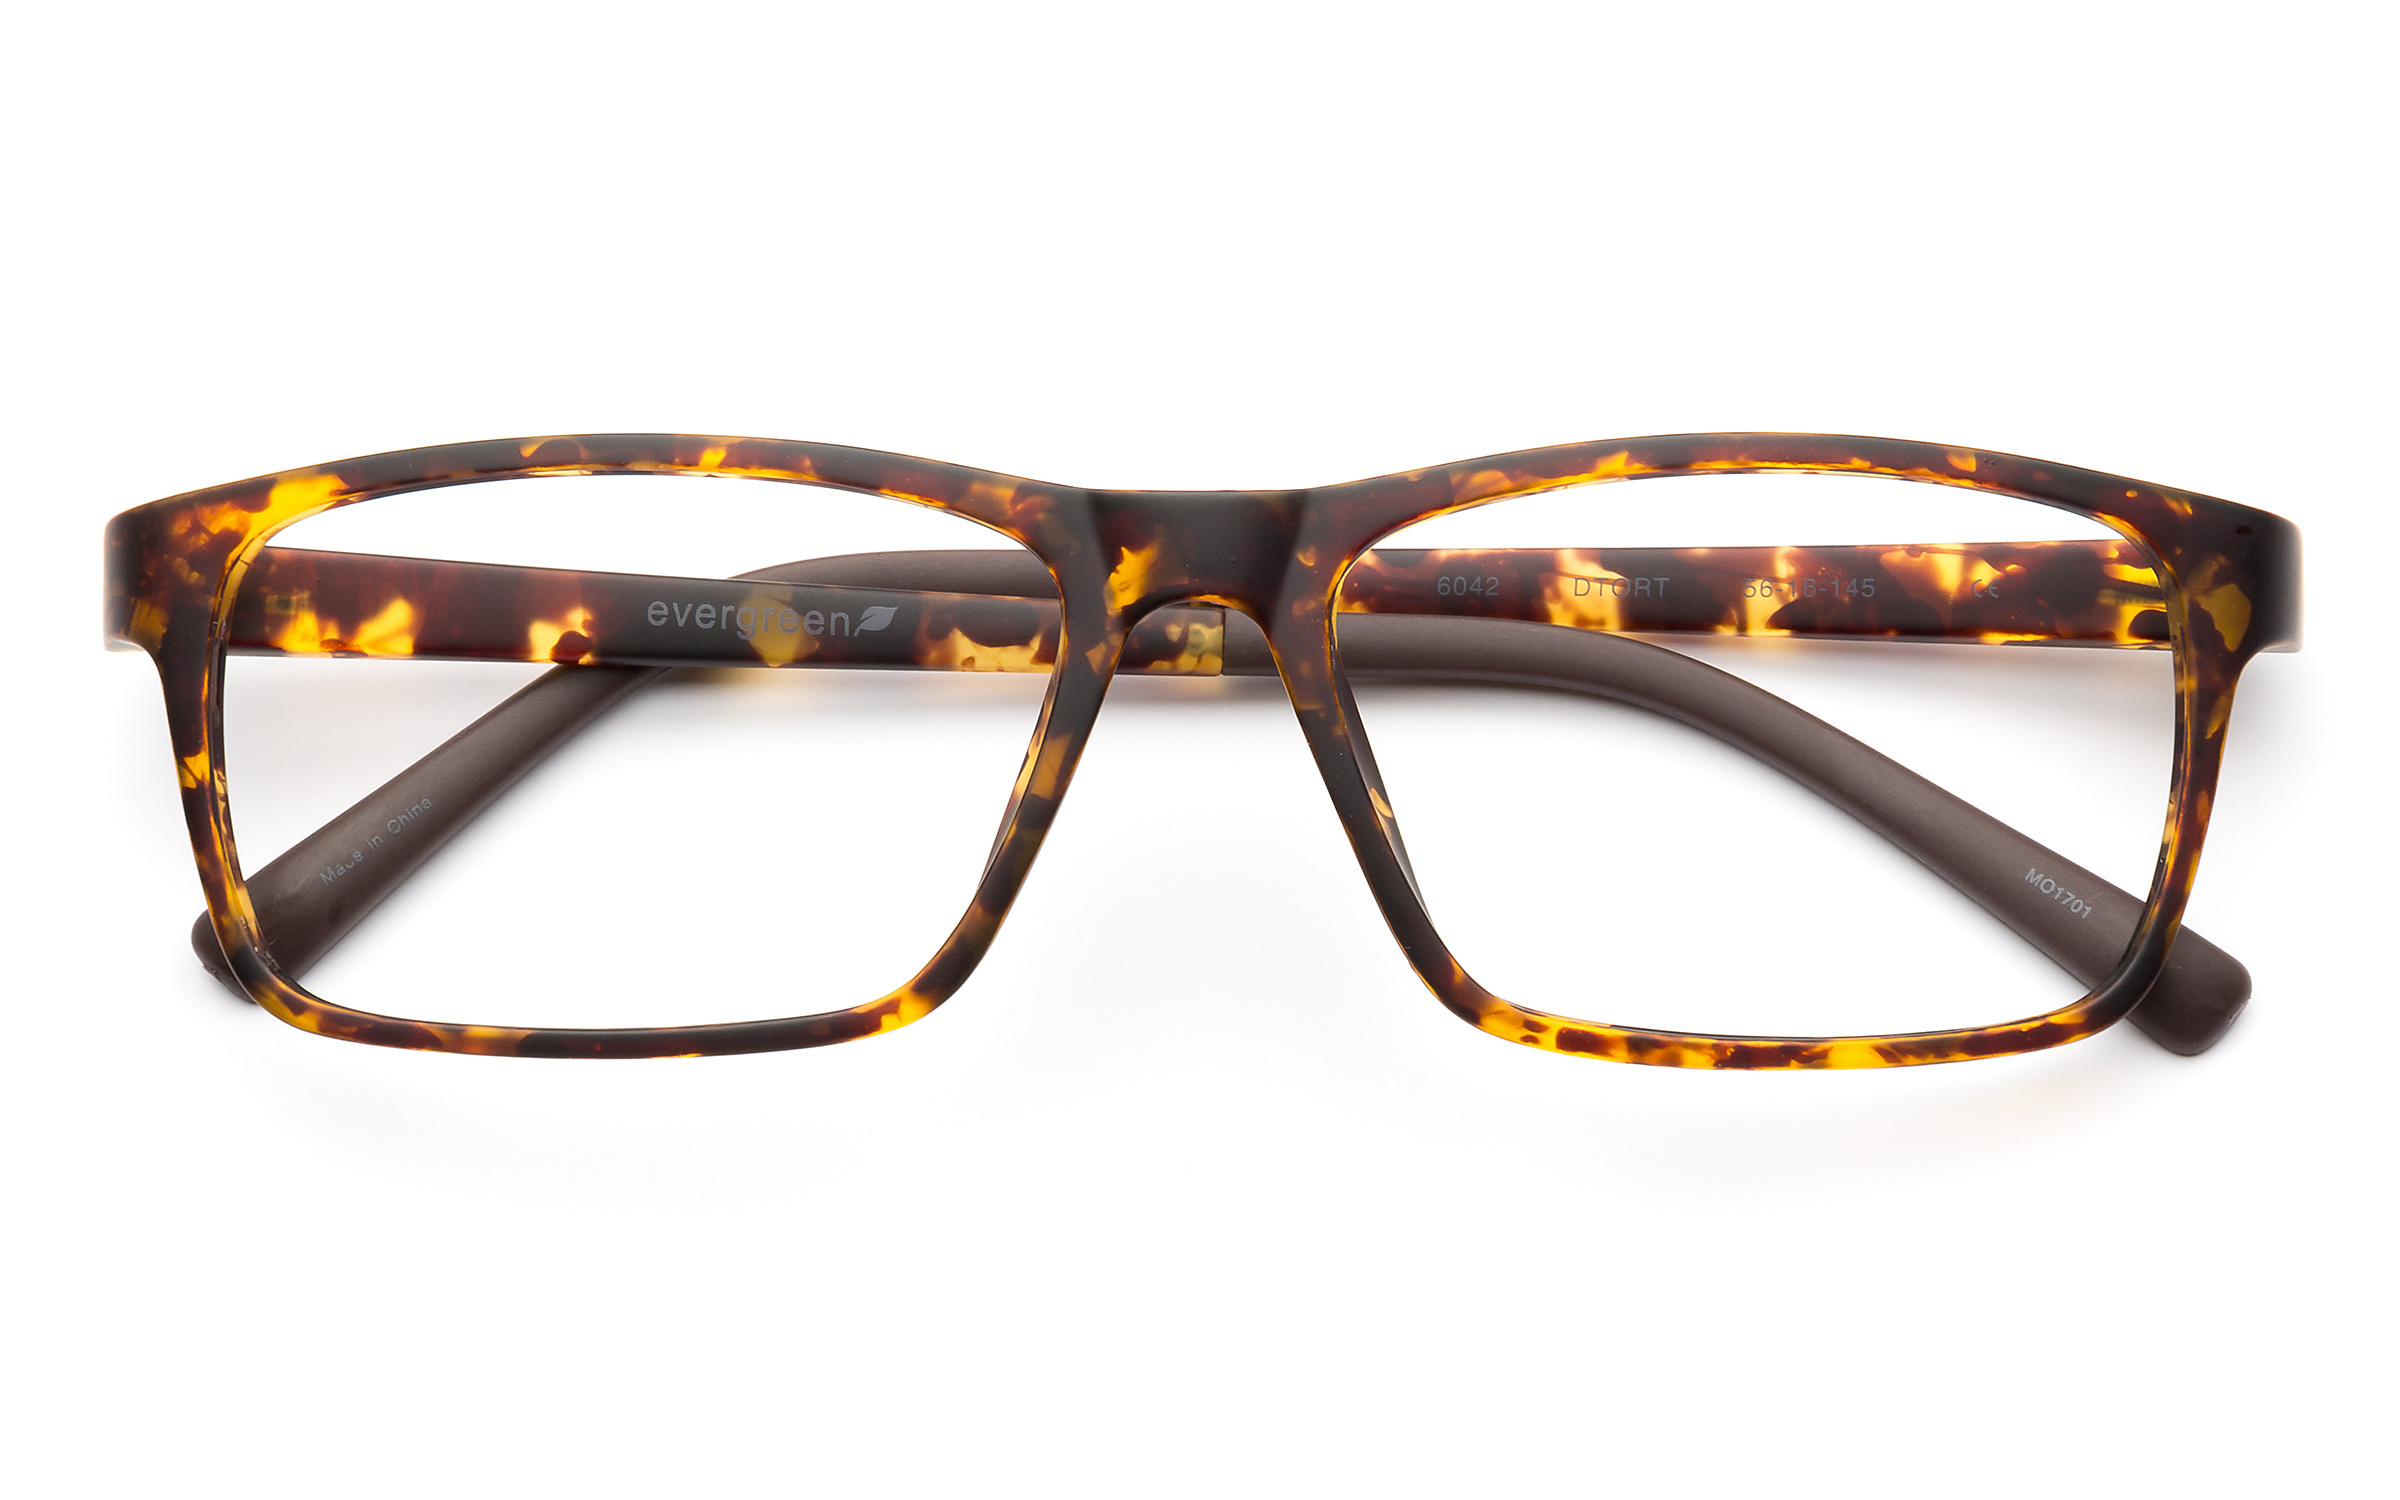 shop with confidence for evergreen 6042 56 glasses